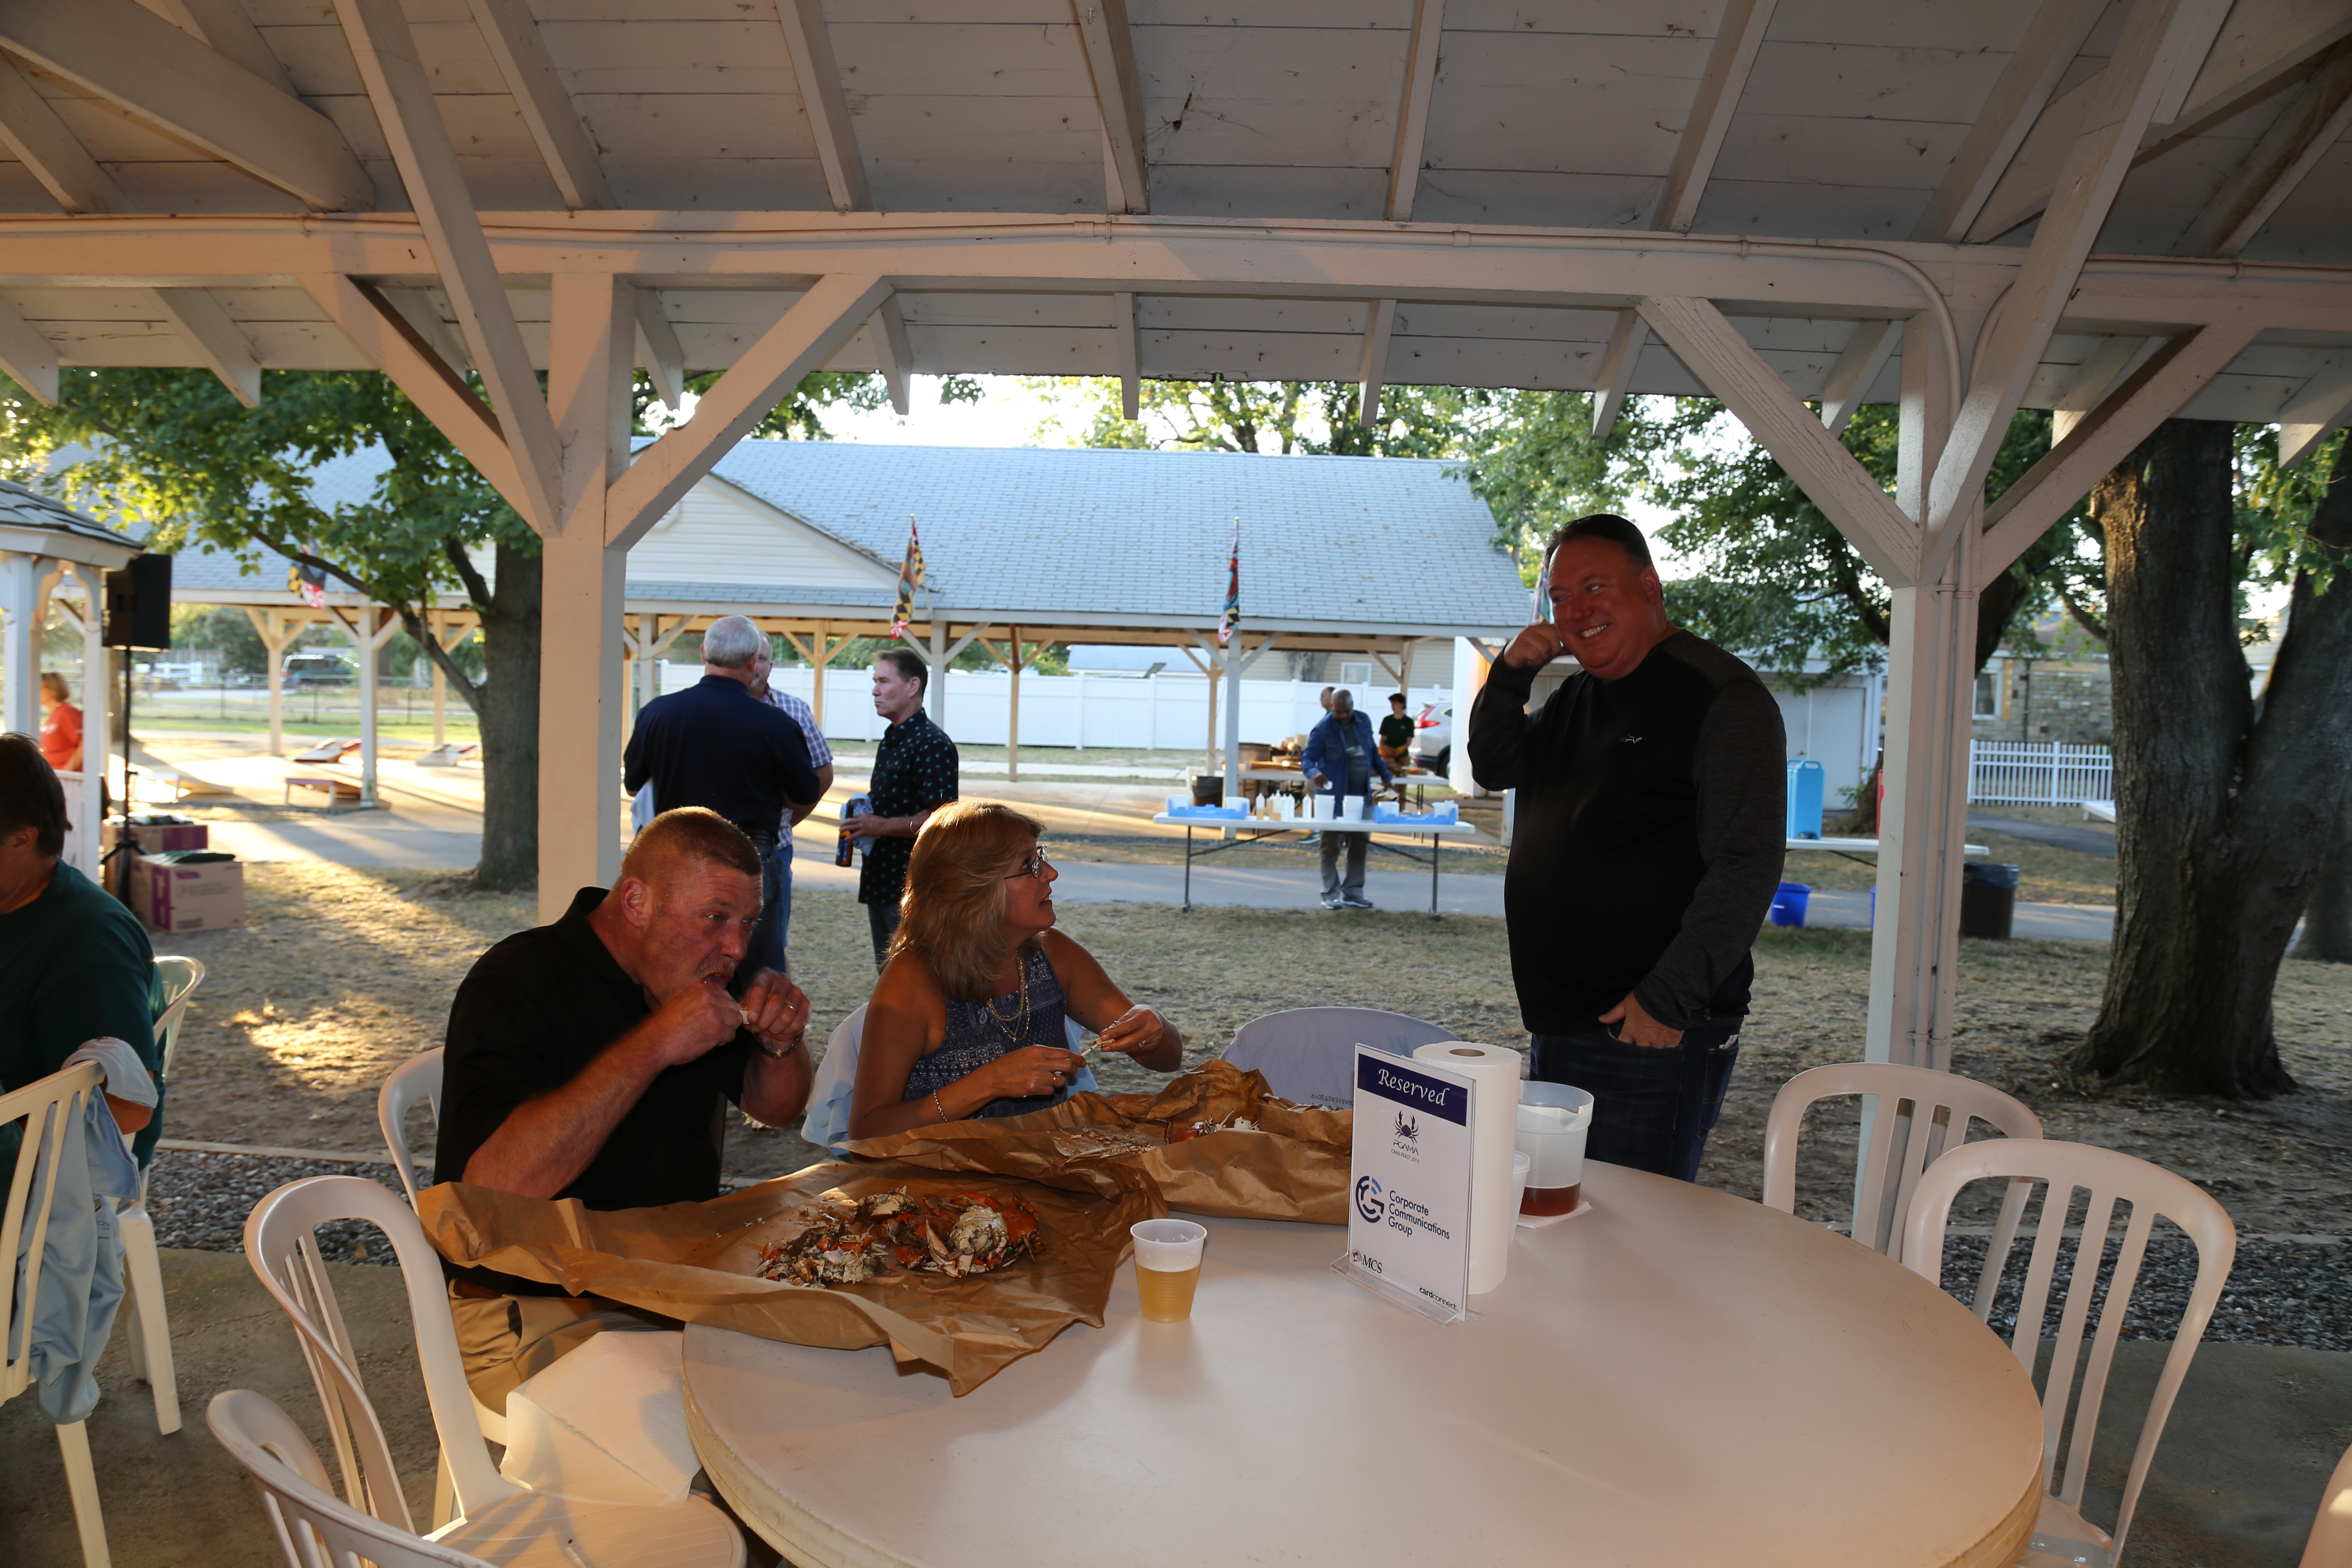 Printing-and-Graphics-Association-crab-feast-2019-kurtz-beach-IMG 1491